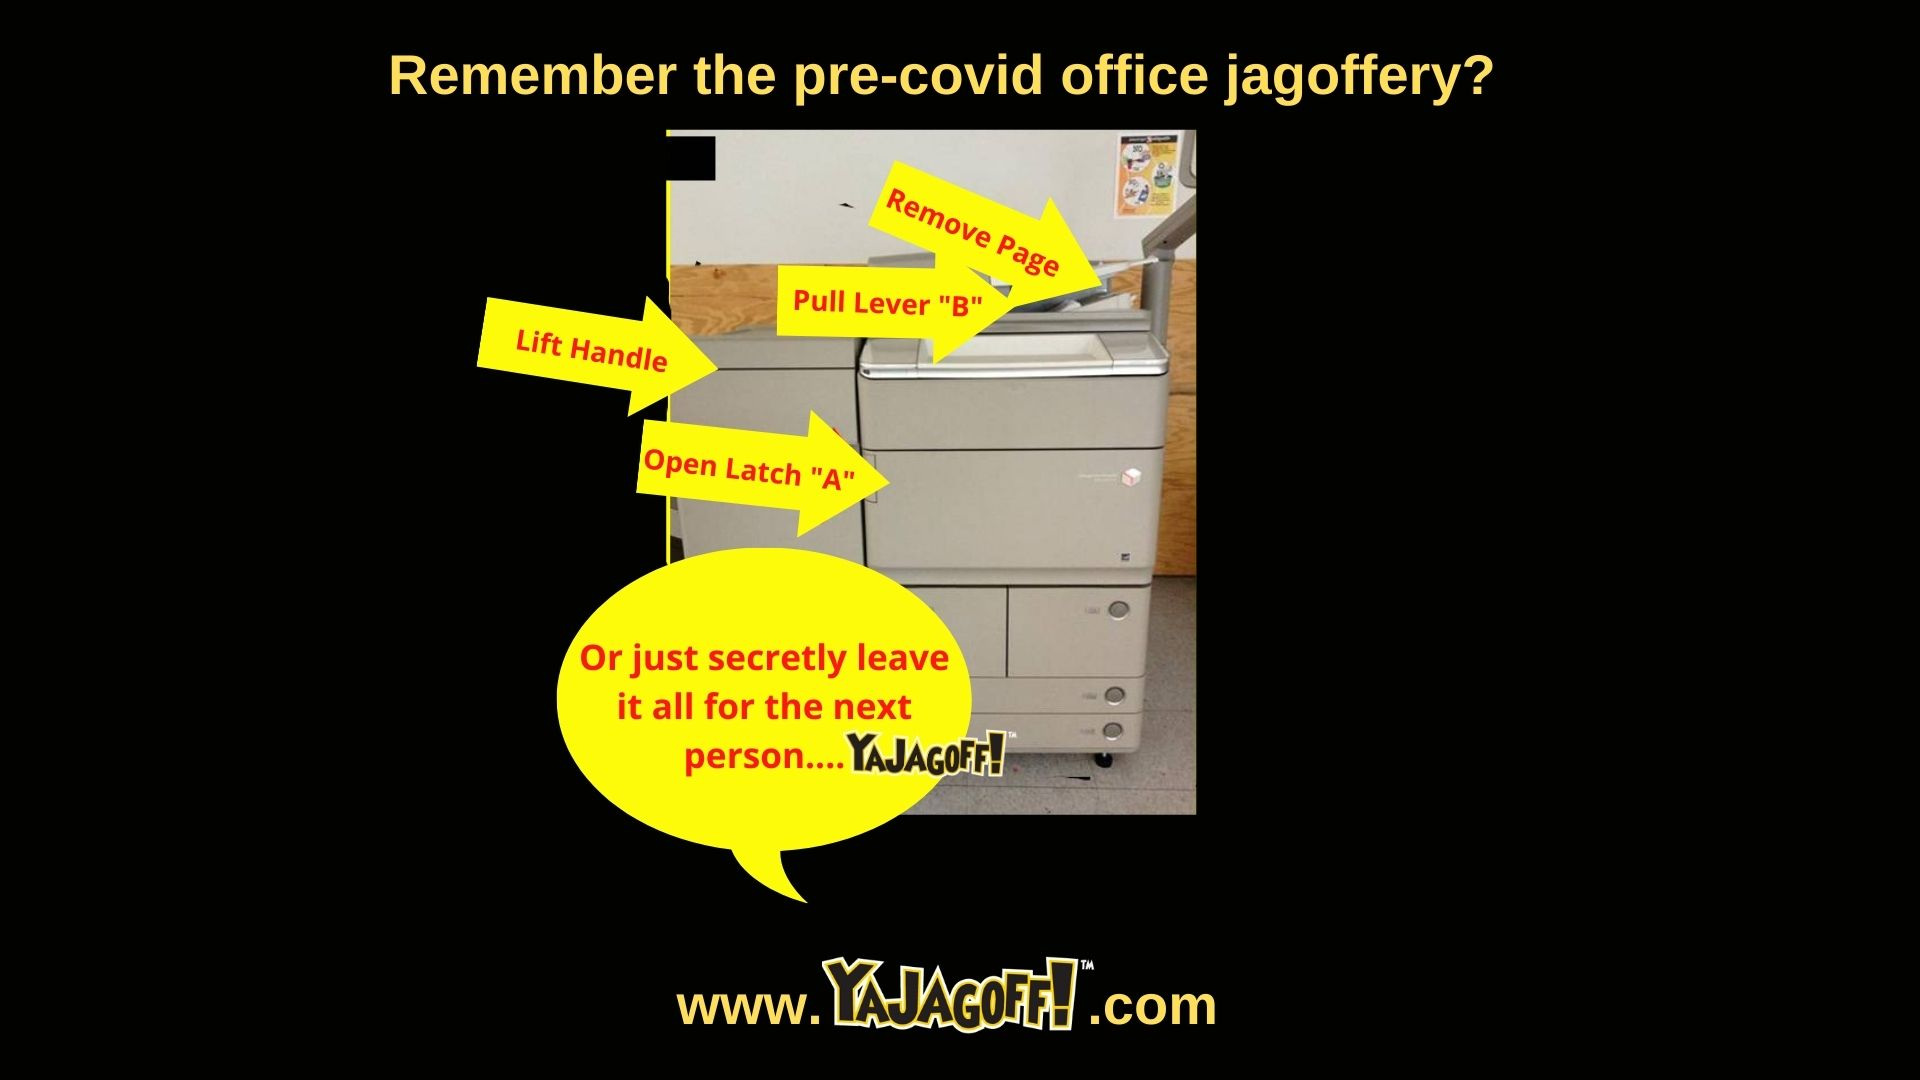 Jagoffs at the office